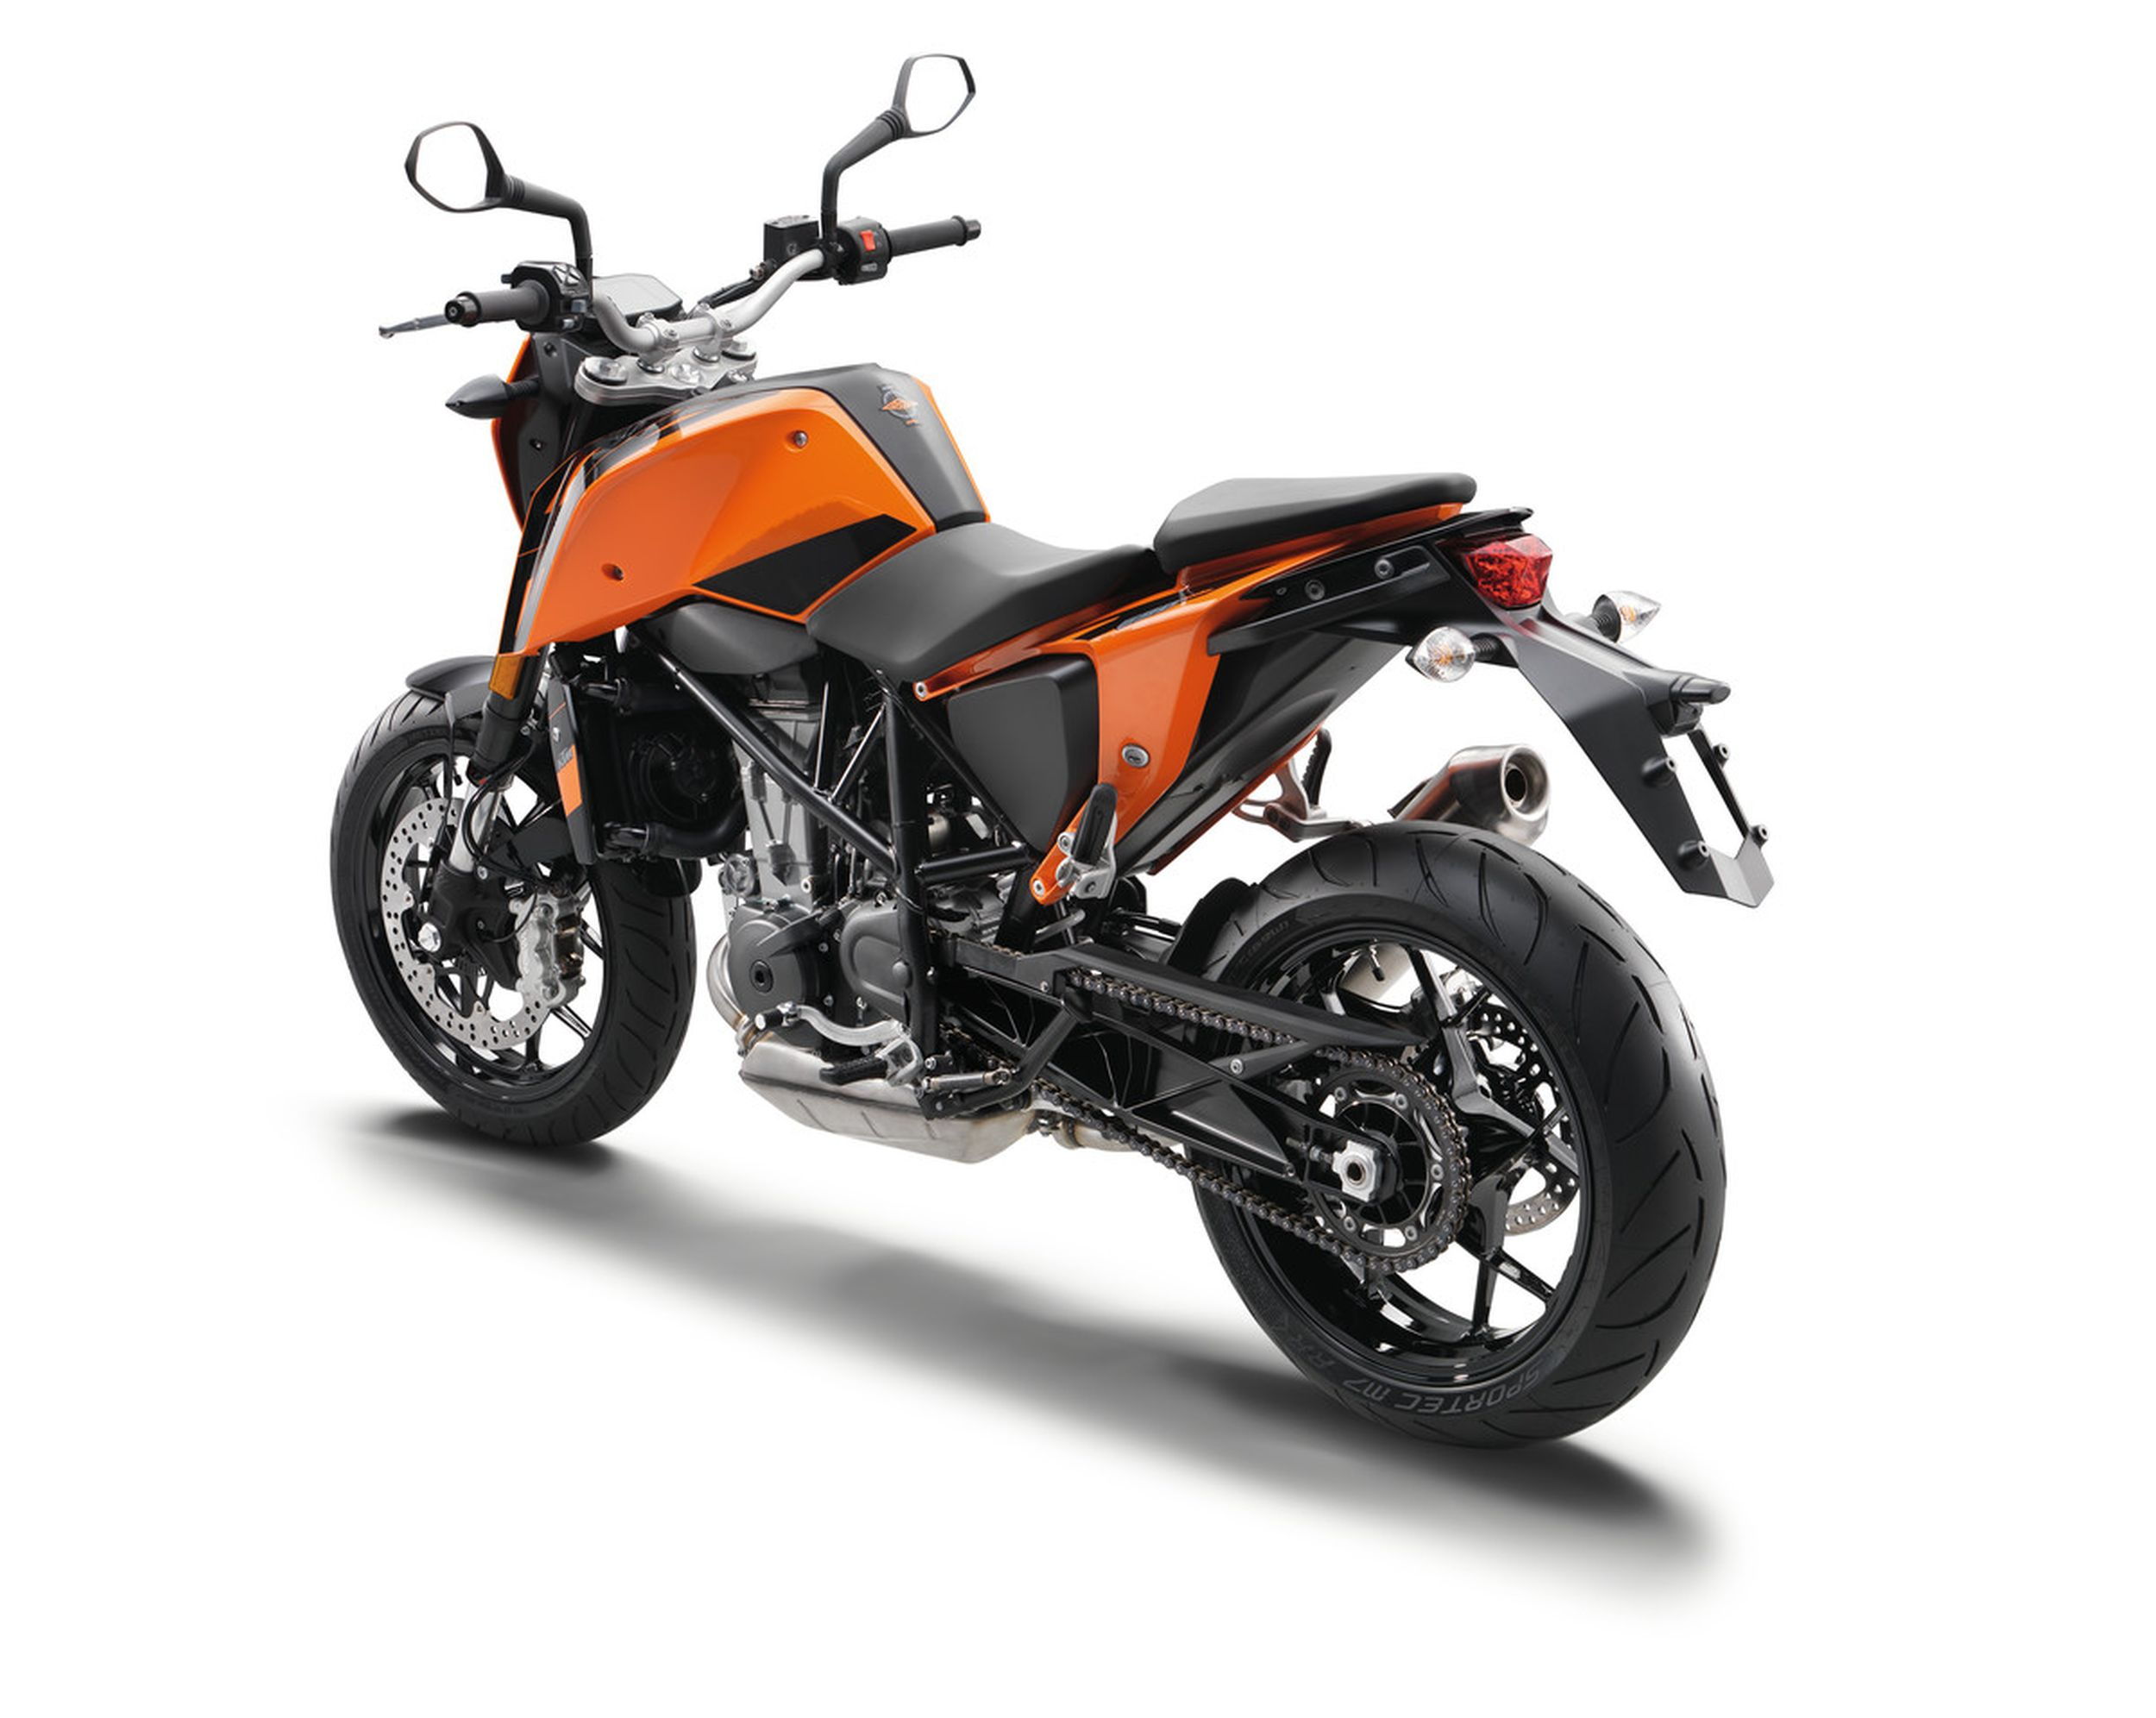 2008 ktm 690 duke 1 66 wallpapers hd desktop wallpapers. Black Bedroom Furniture Sets. Home Design Ideas